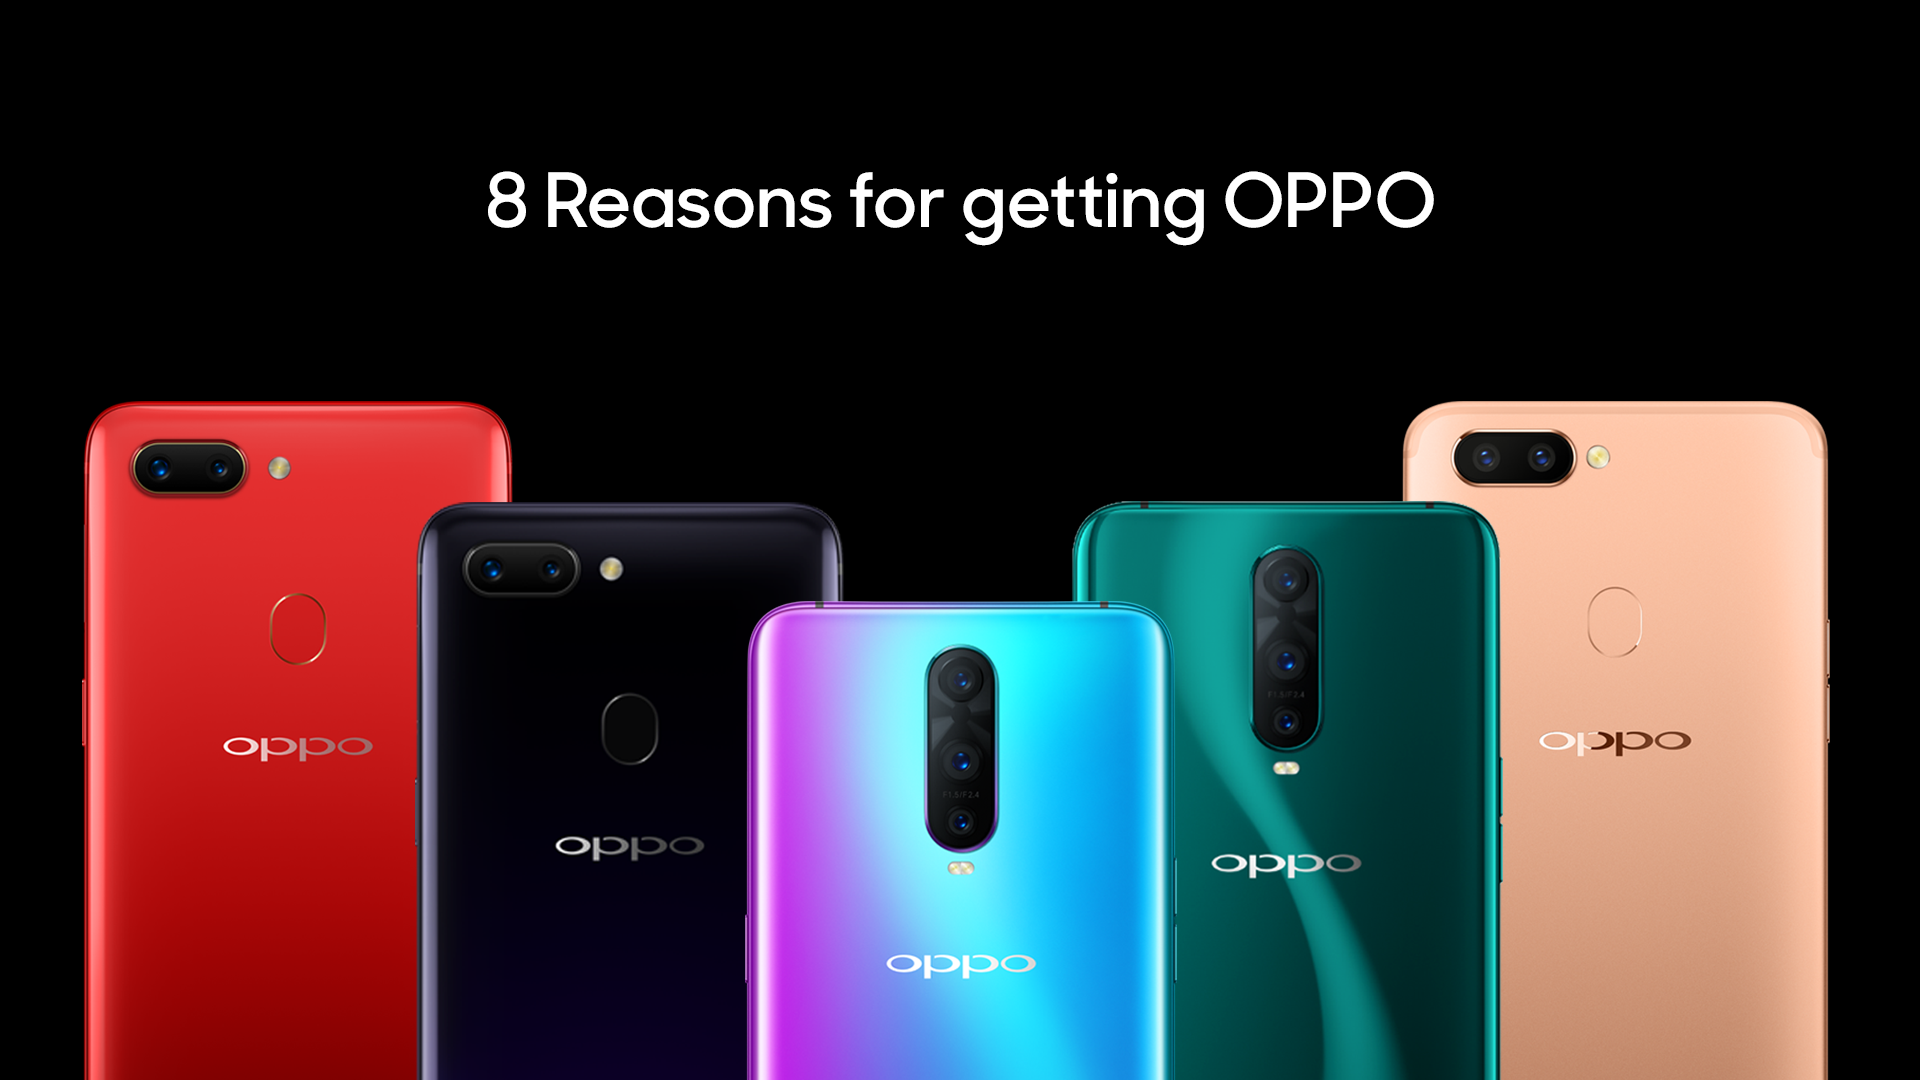 8 reasons why to buy an OPPO phone